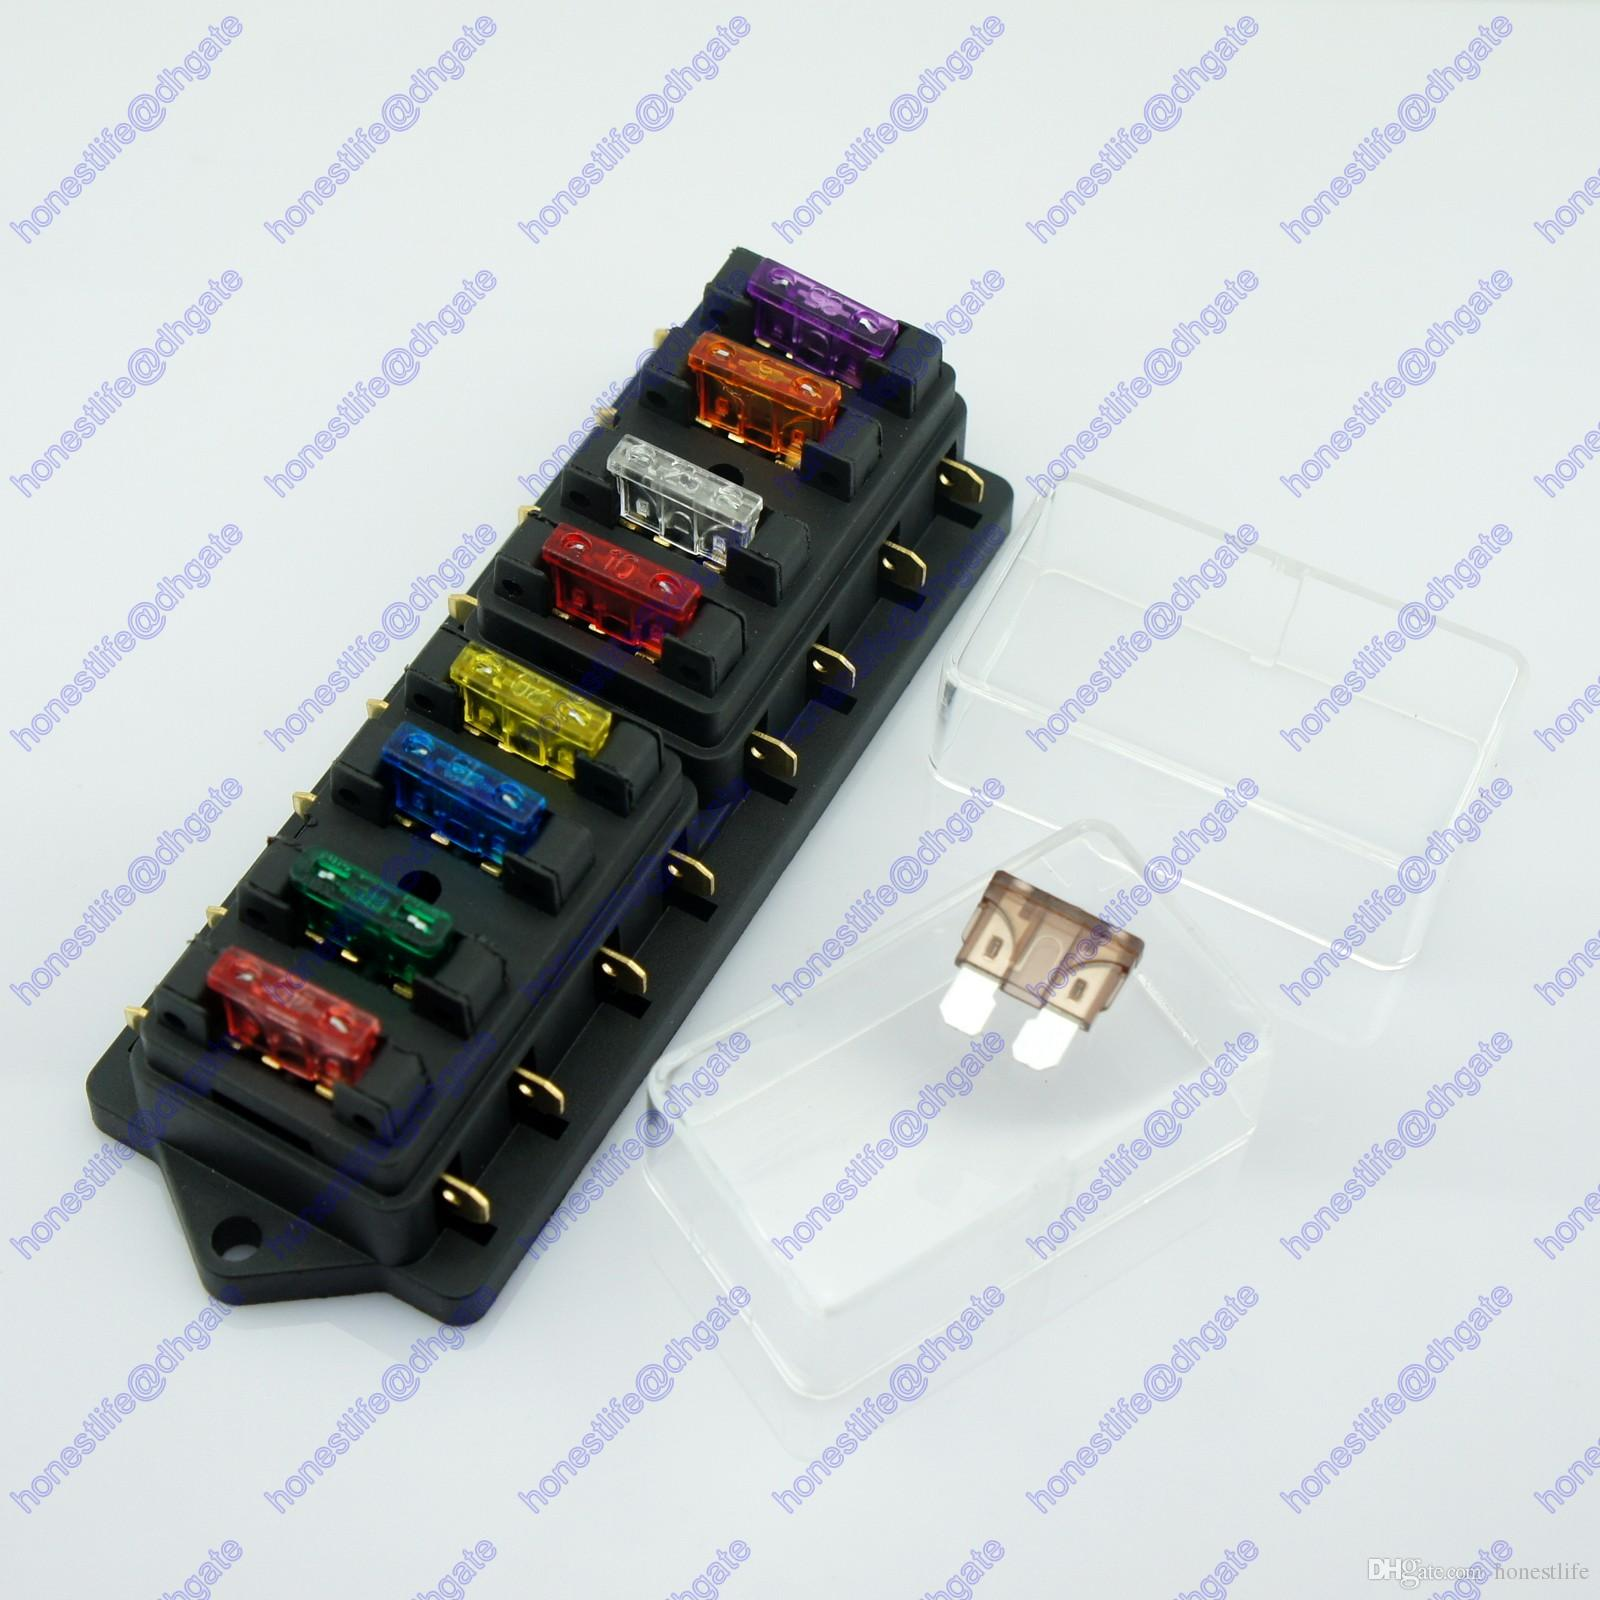 8 Circuit Fuse Box | Wiring Diagram on rv fuse box, battery fuse box, solar fuse box, power fuse box, marine fuse box, green fuse box, 220v fuse box, 6v fuse box, charger fuse box, portable fuse box, waterproof fuse box, car fuse box, 12v interior lighting, 12v solar panel wiring diagram, dc fuse box, automotive fuse box, boat fuse box, 30a fuse box, electric fuse box, ac fuse box,